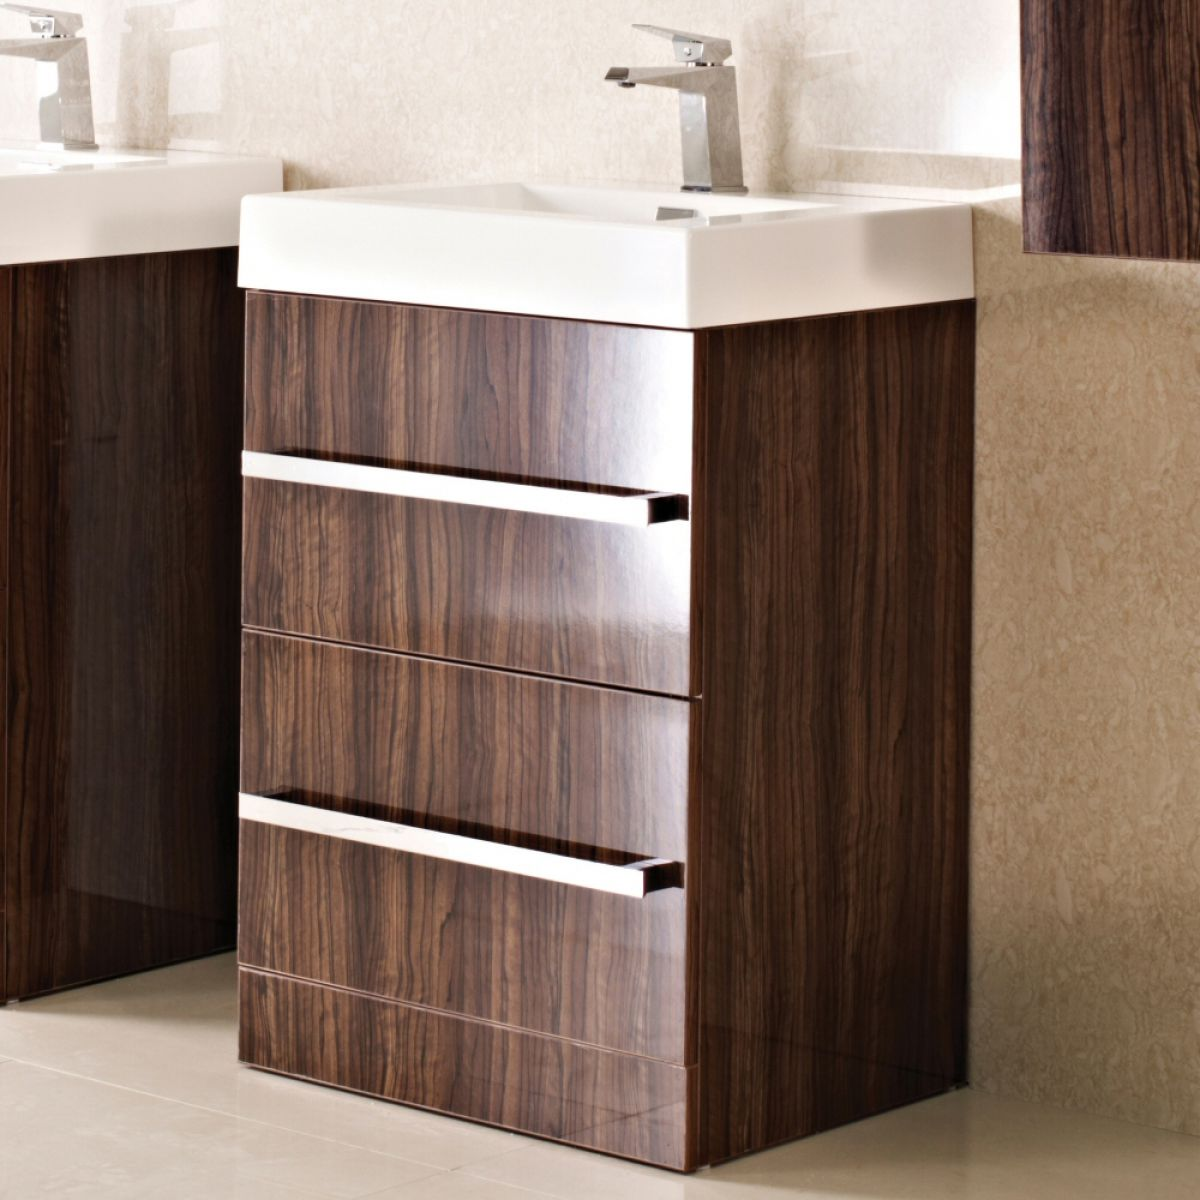 Phoenix vue floor standing vanity unit with basin uk for Floor standing bathroom furniture